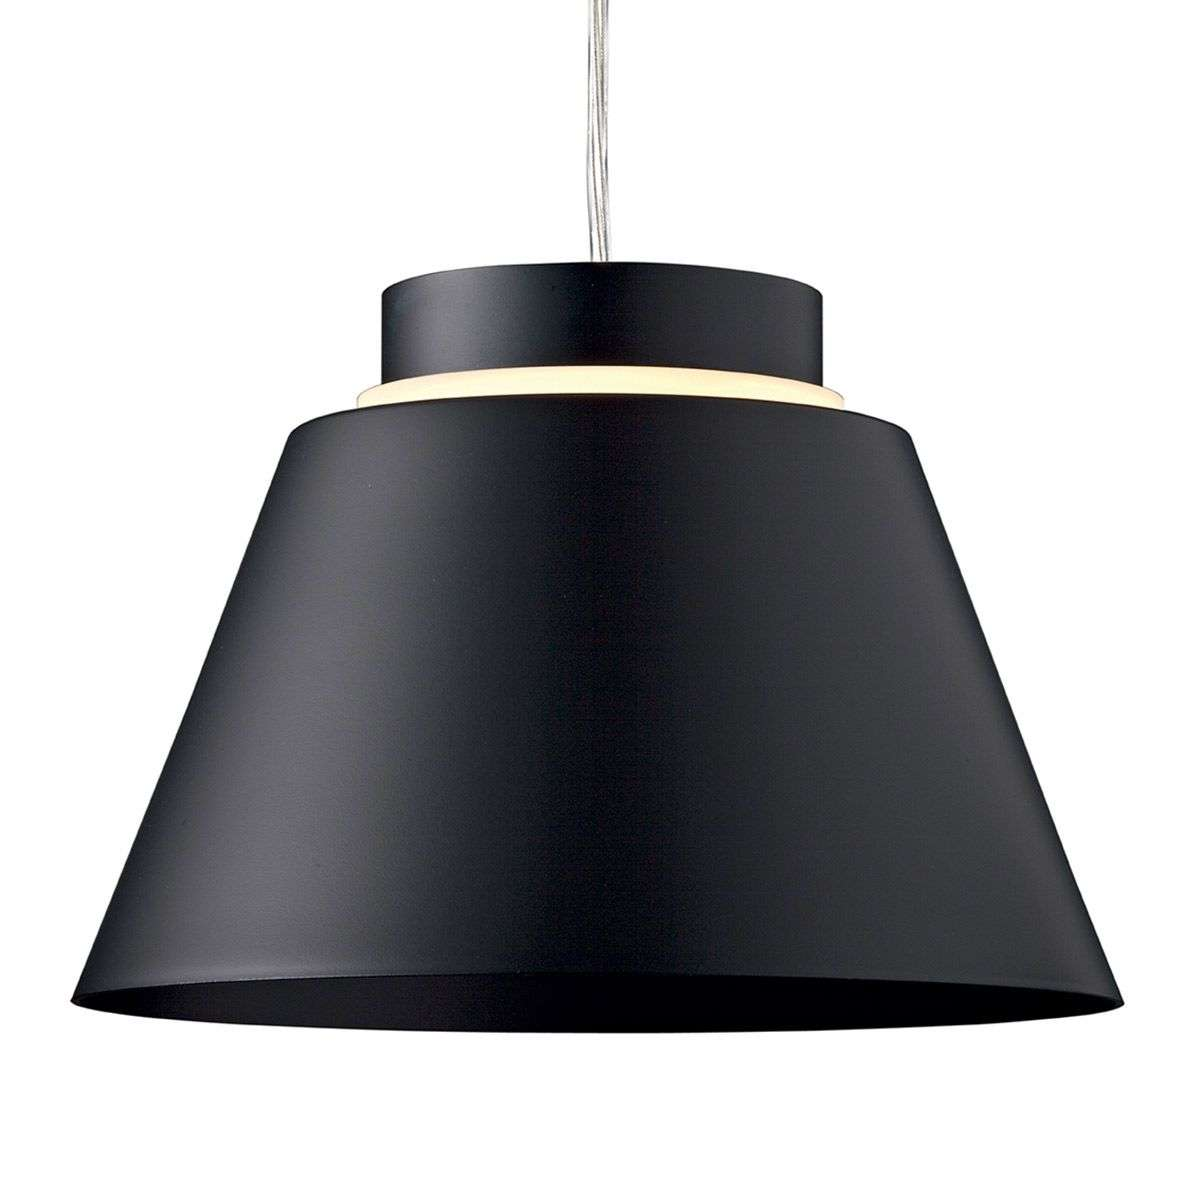 Matt black LED pendant light Lia-3039204-31  sc 1 st  Lights.ie & Matt black LED pendant light Lia | Lights.ie